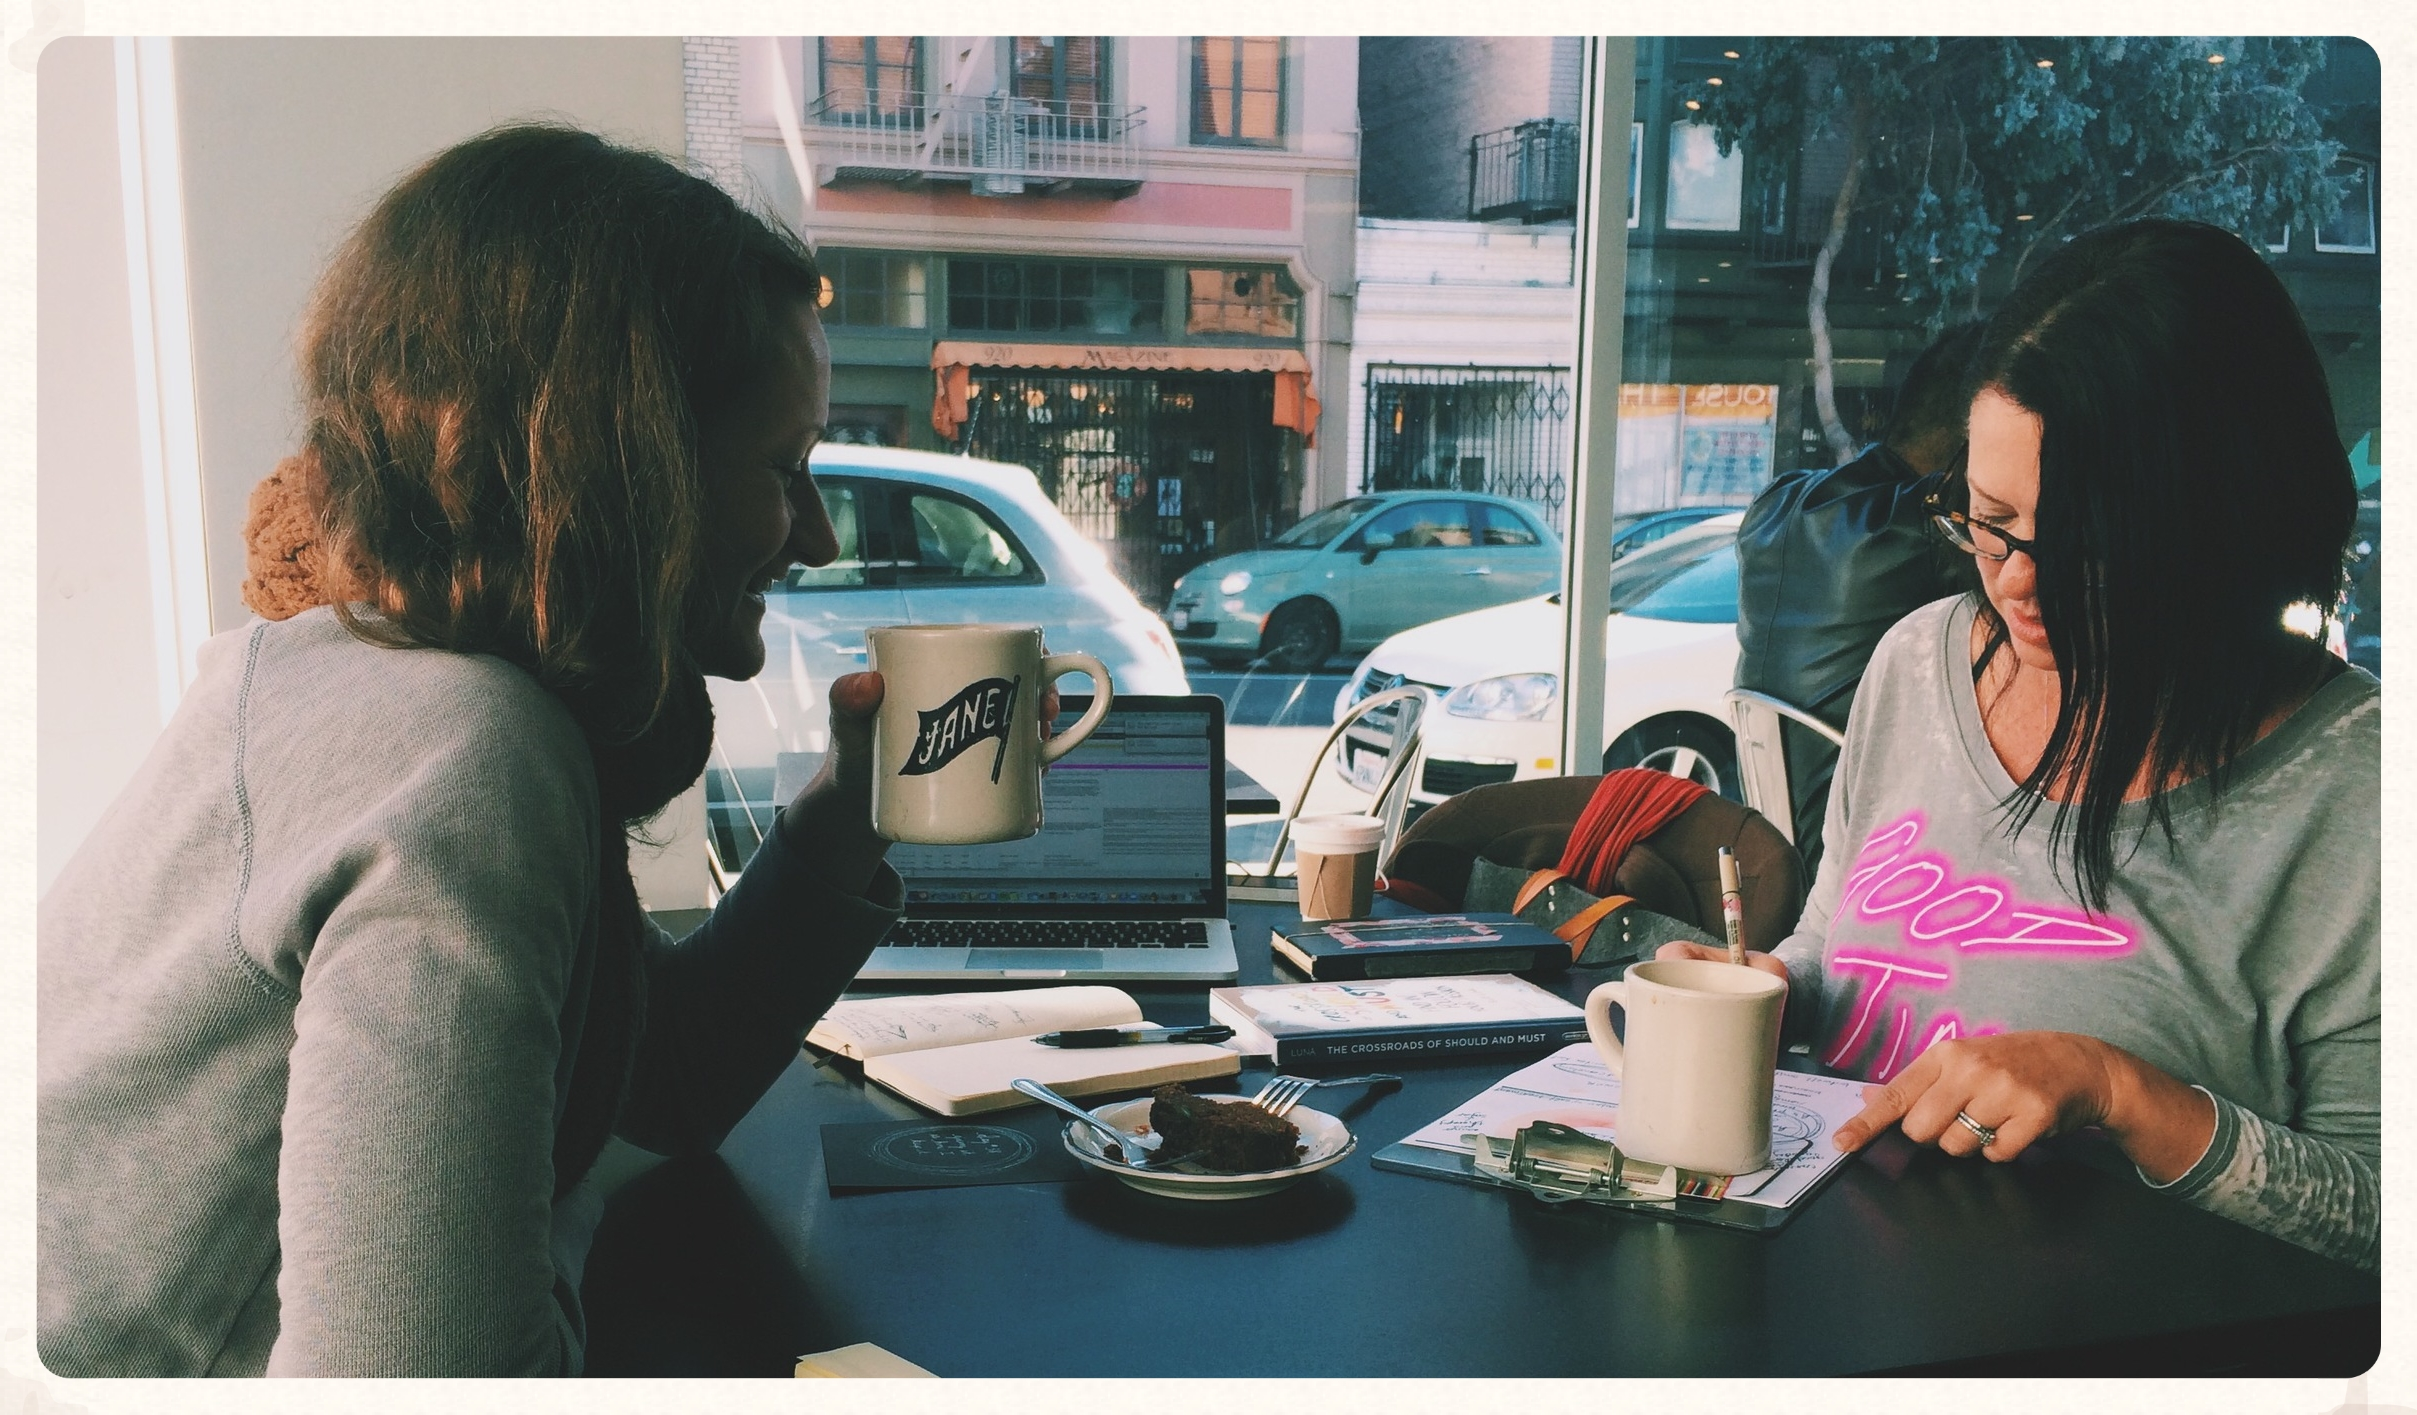 San Francisco, November, 2015. Meeting my new friend,    Tammi Salas   , for coffee and collaboration. I picked her up online.